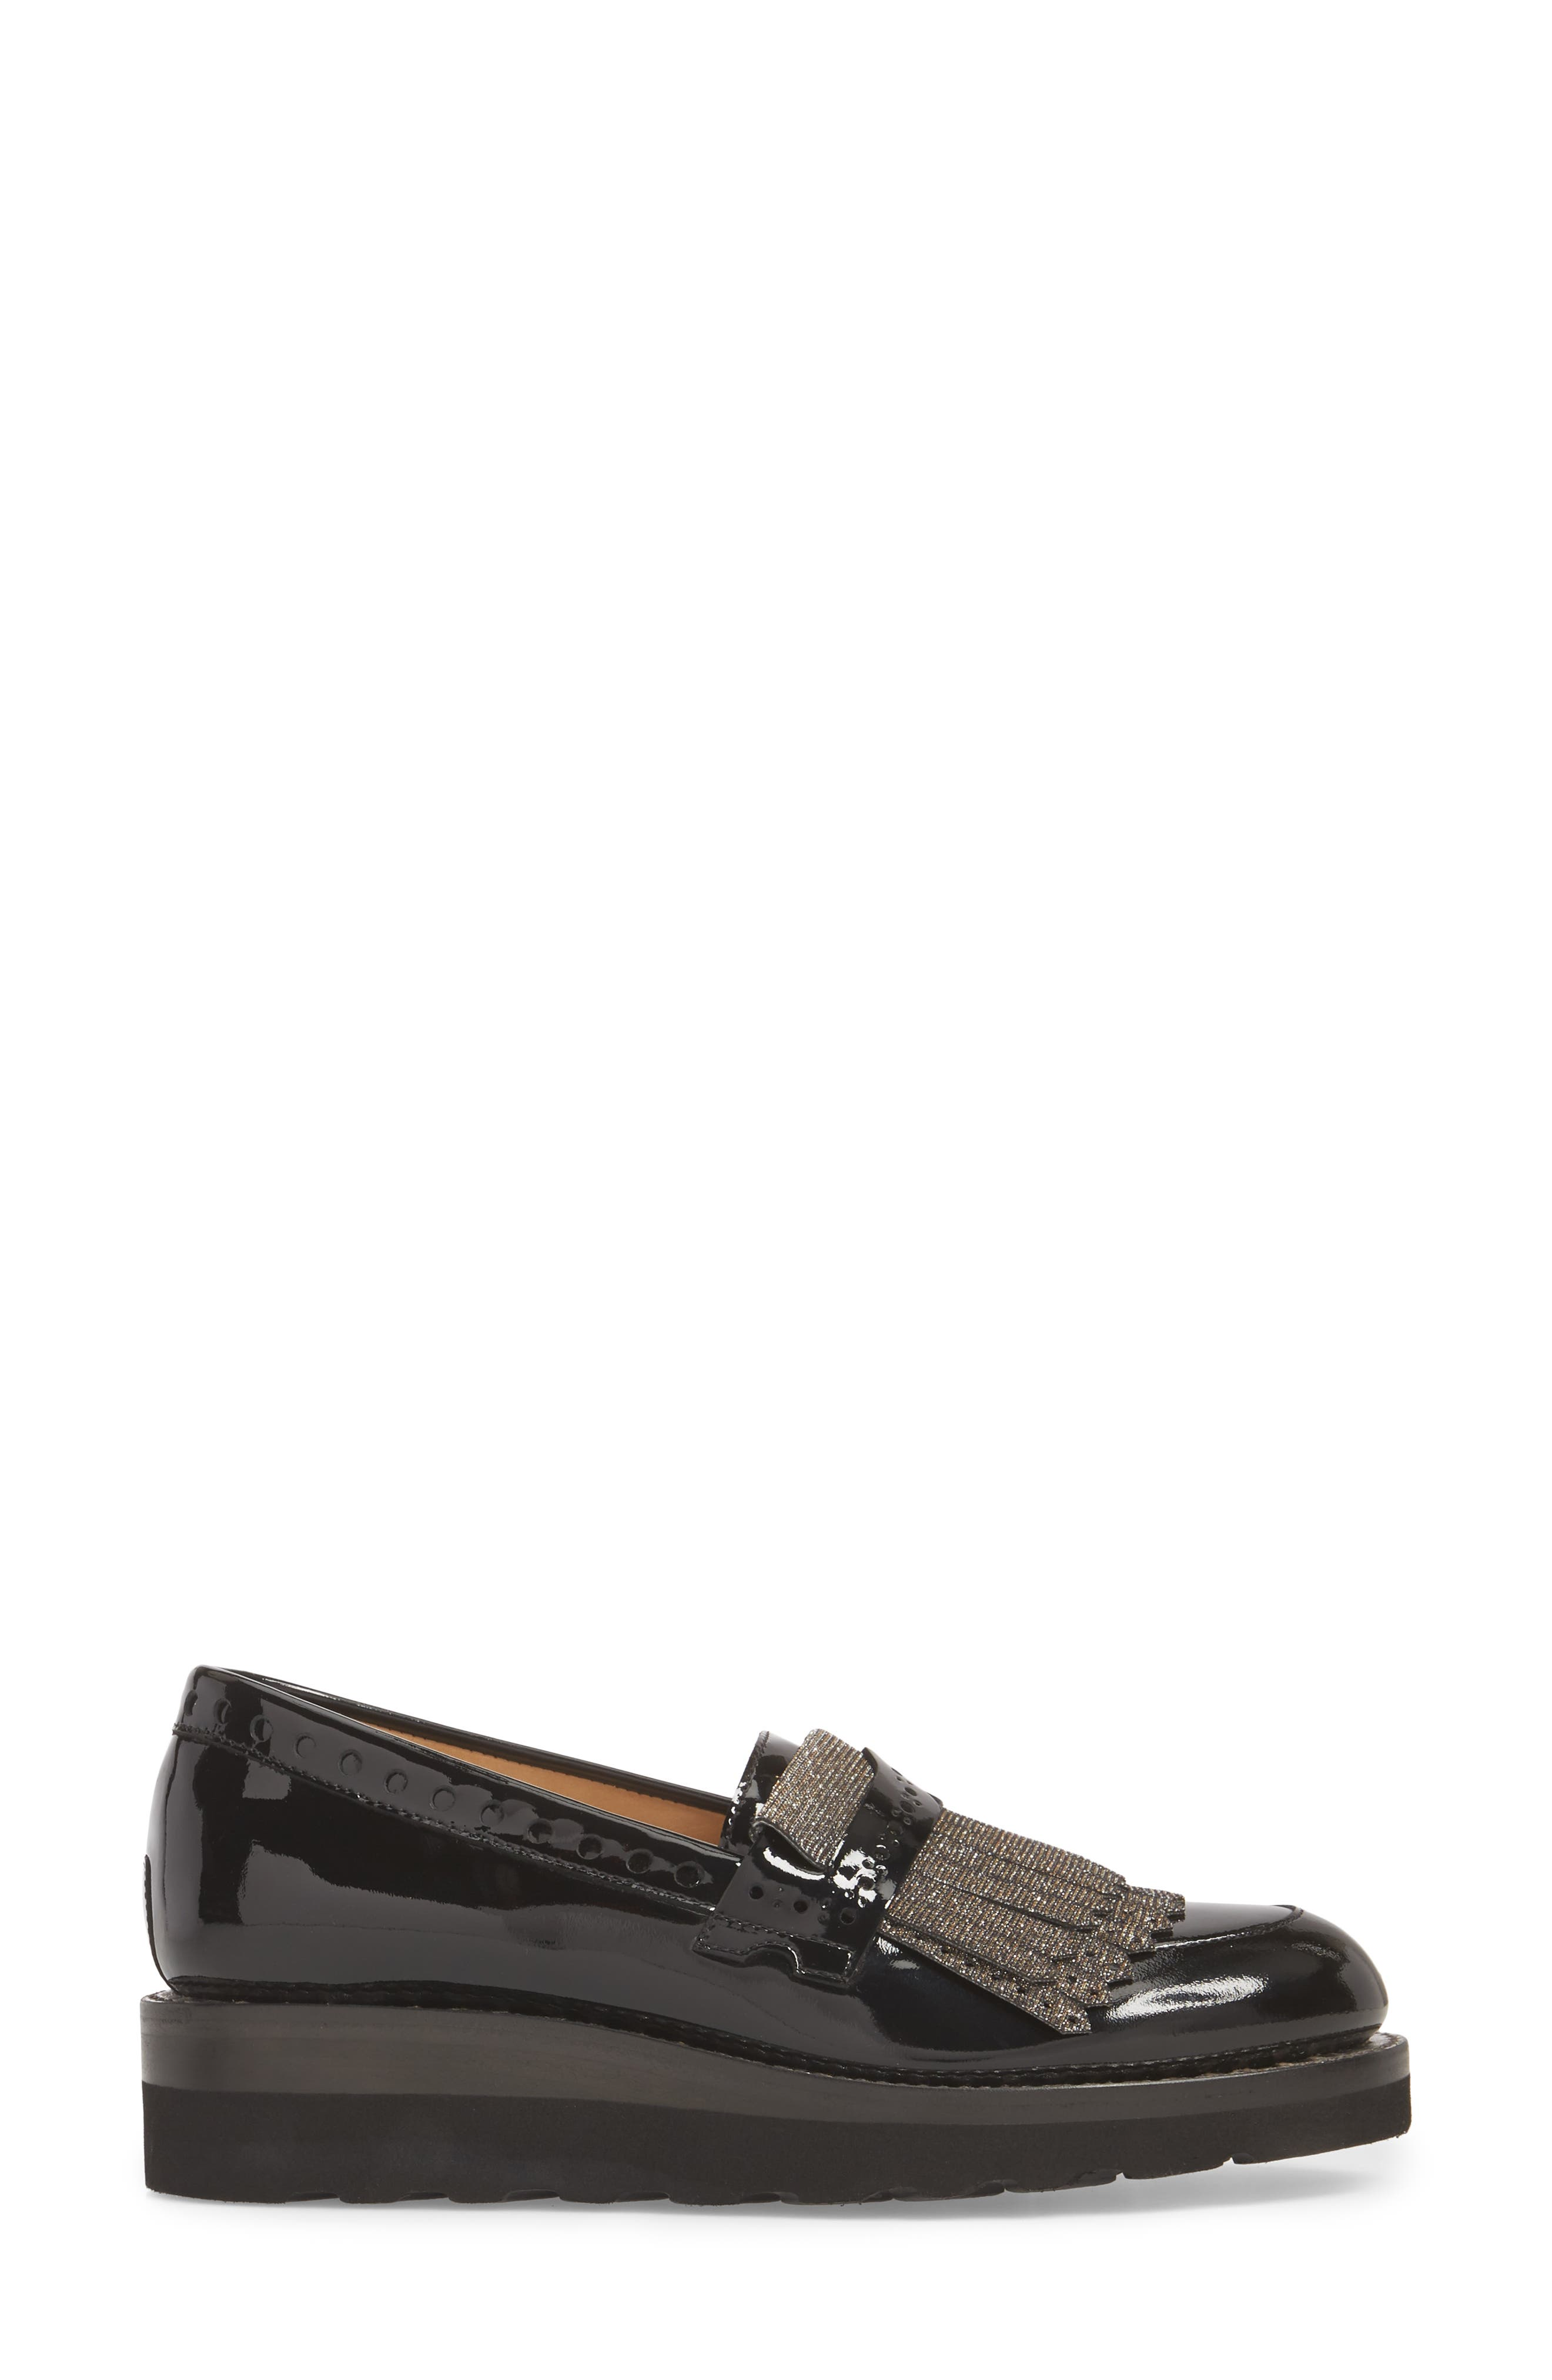 Mr. Pennywise Wedge Loafer,                             Alternate thumbnail 3, color,                             Black Metallic